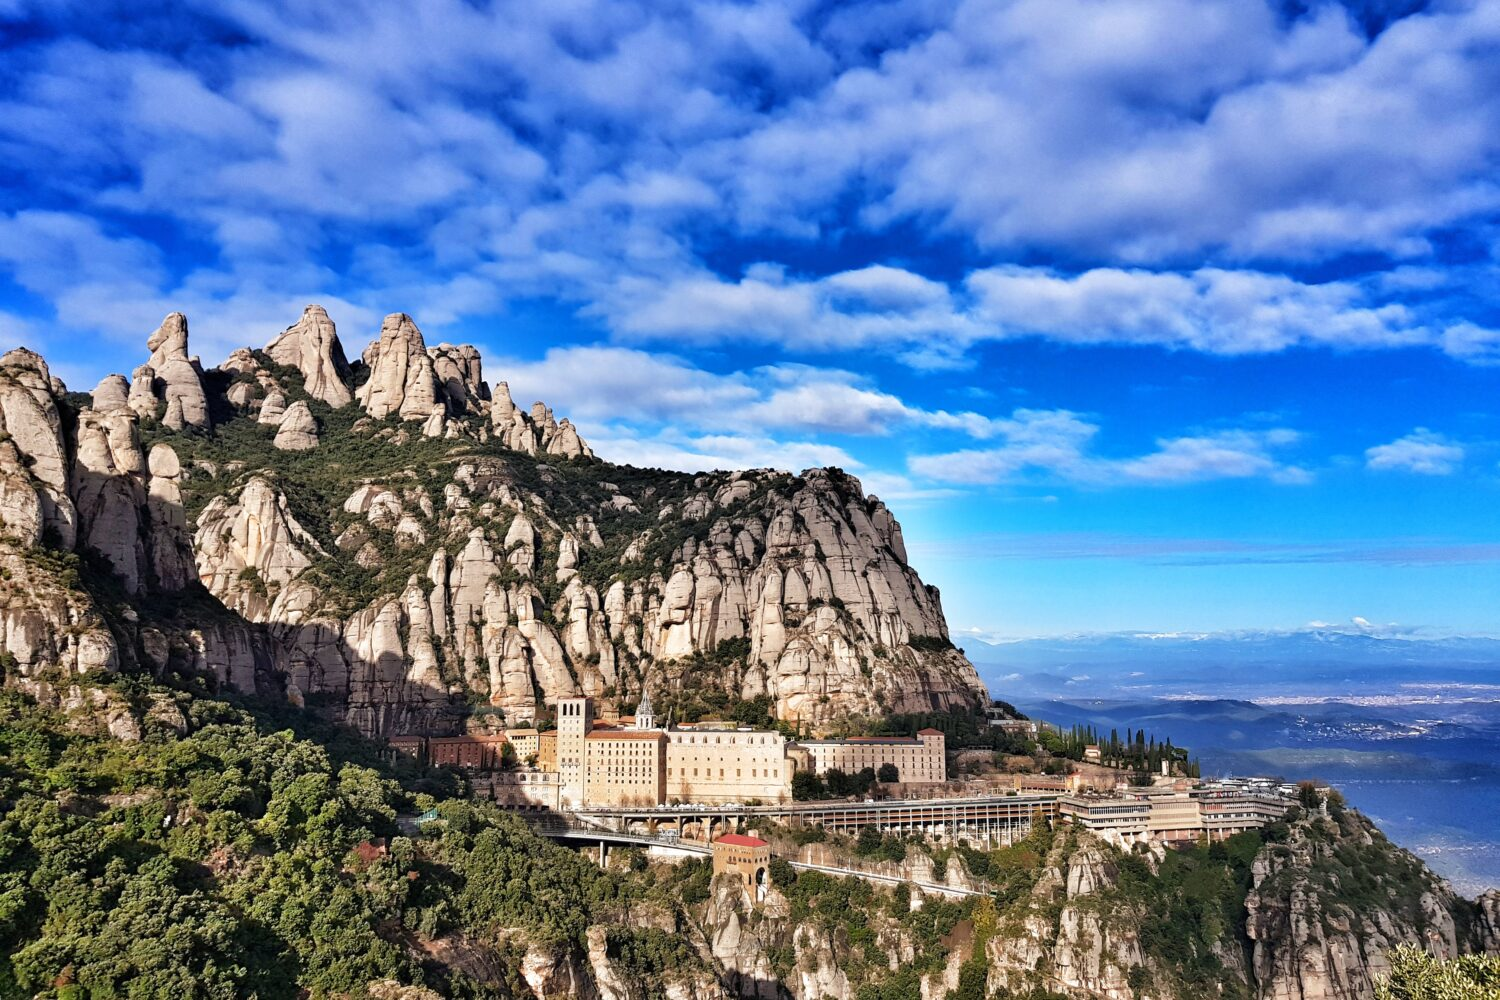 The famous viewpoint in Montserrat